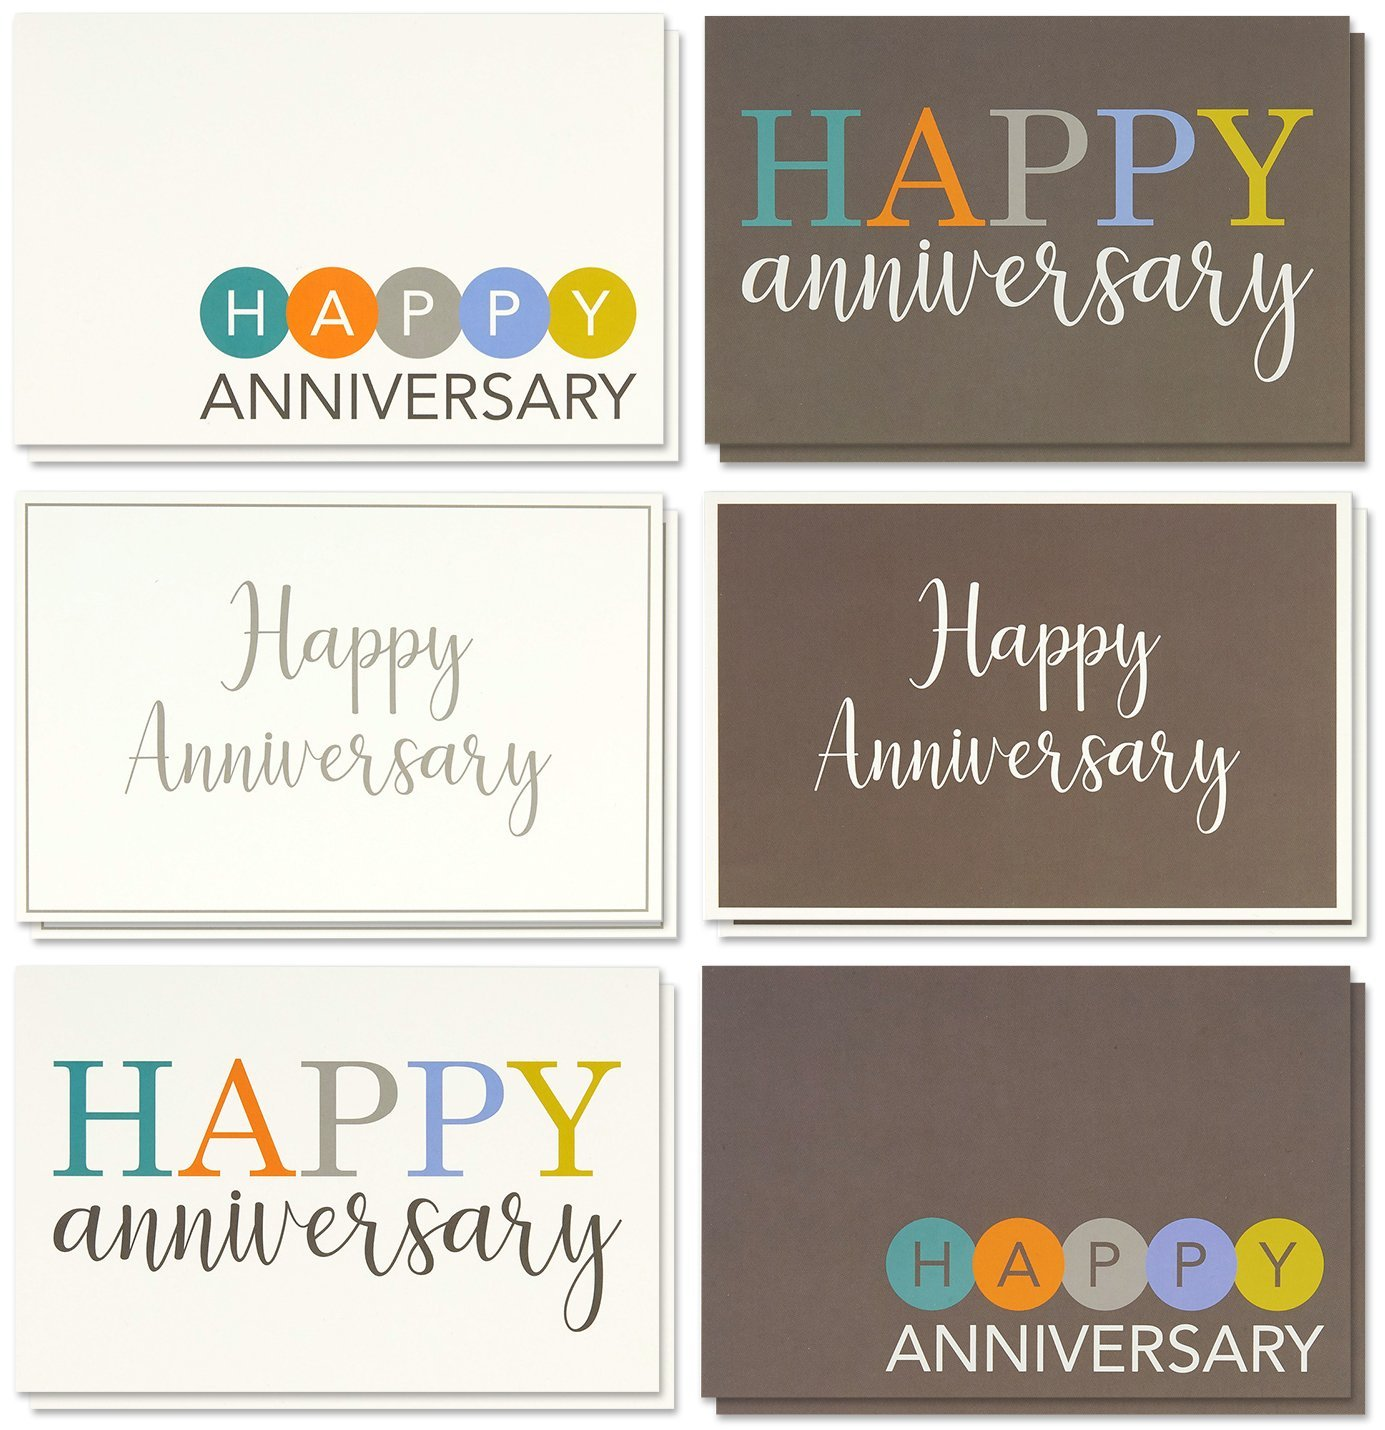 Amazon 36 Pack Anniversary Card Set Happy Anniversary Cards